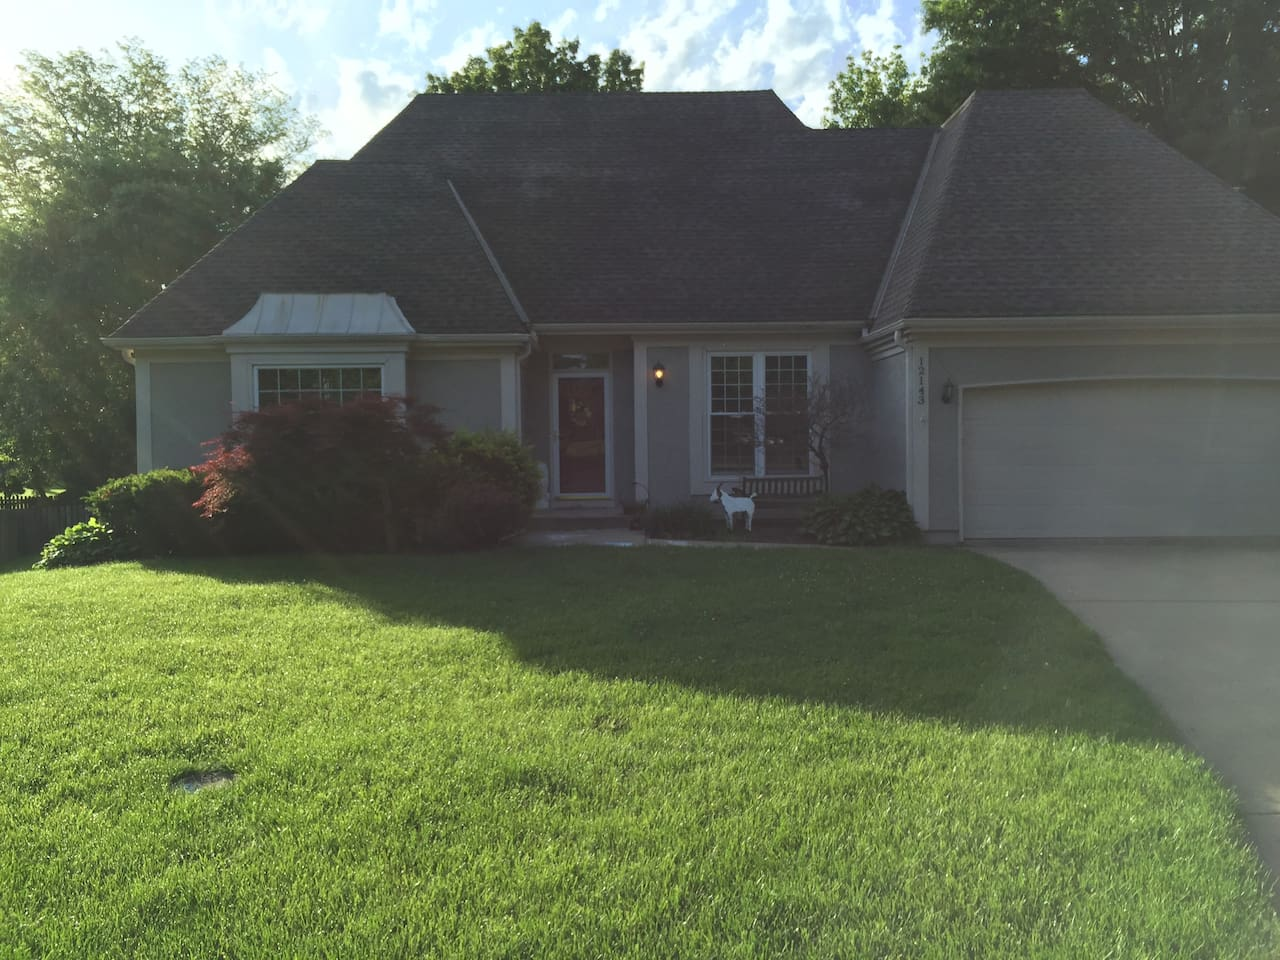 We live in a charming 1 1/2 story home in Overland Park, KS.